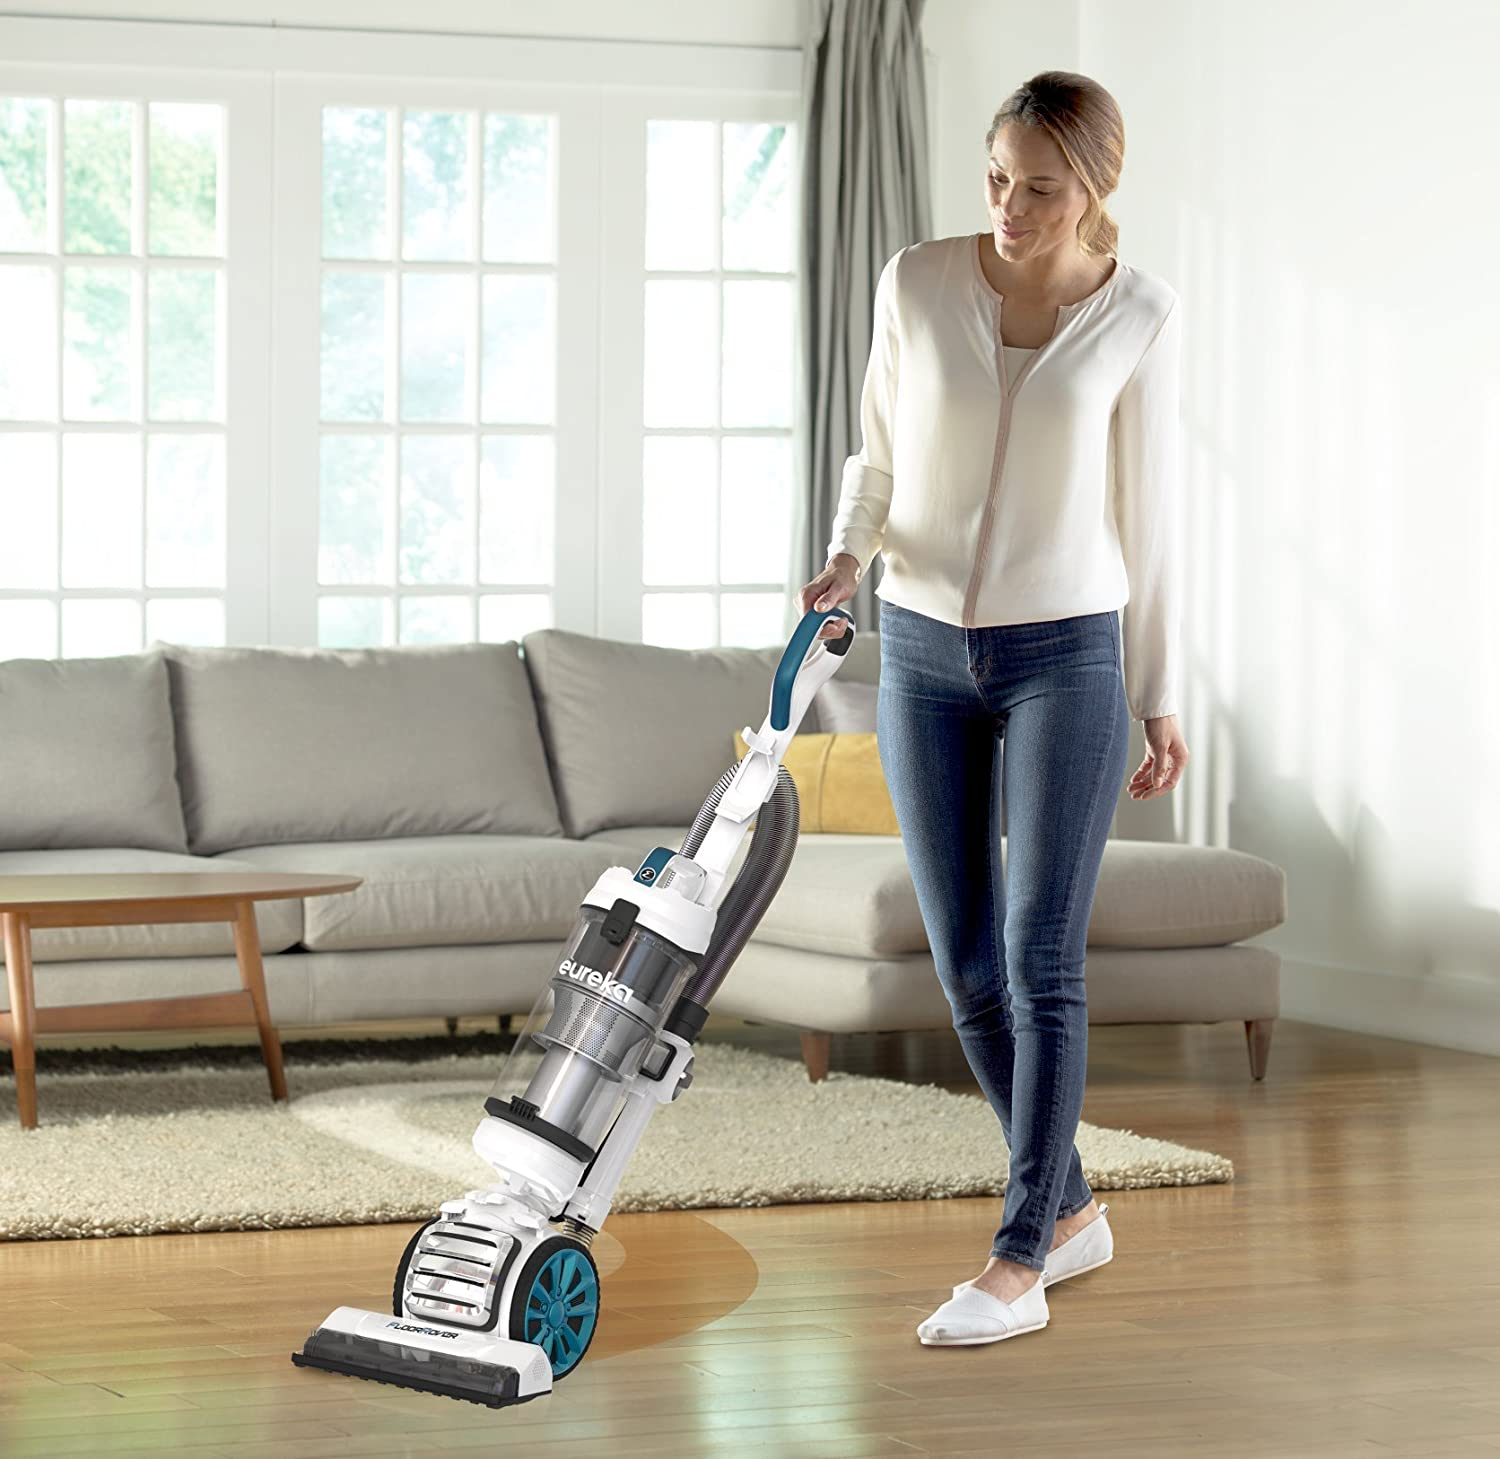 Eureka Pet Vacuum Cleaner